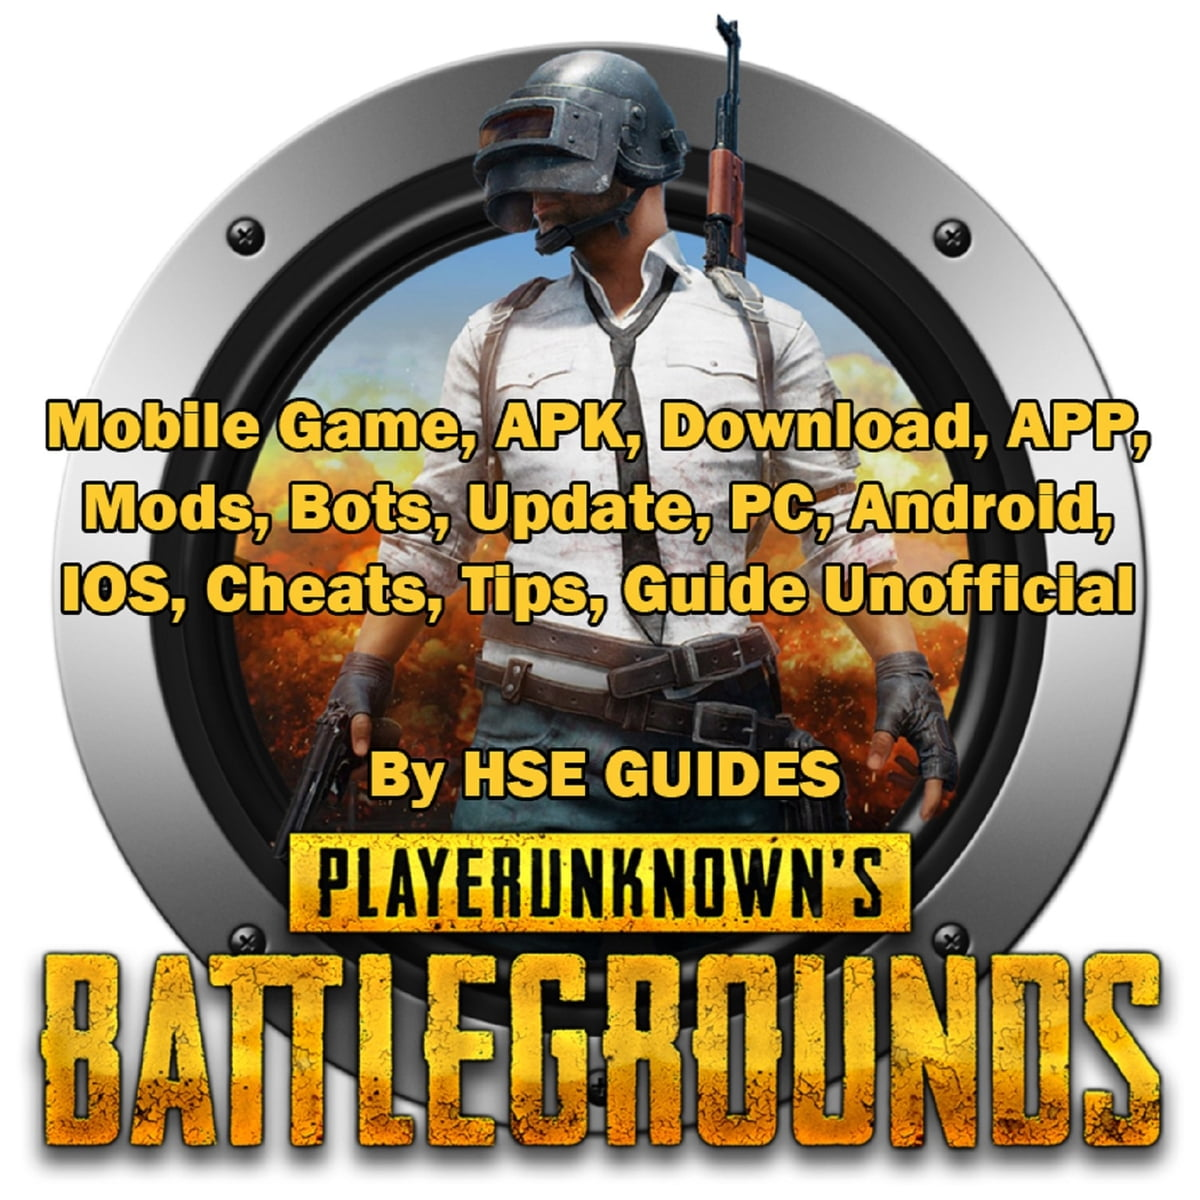 PUBG Mobile Game, APK, Download, APP, Mods, Bots, Update, PC, Android, IOS,  Cheats, Tips, Guide Unofficial audiobook by Hse Guides - Rakuten Kobo